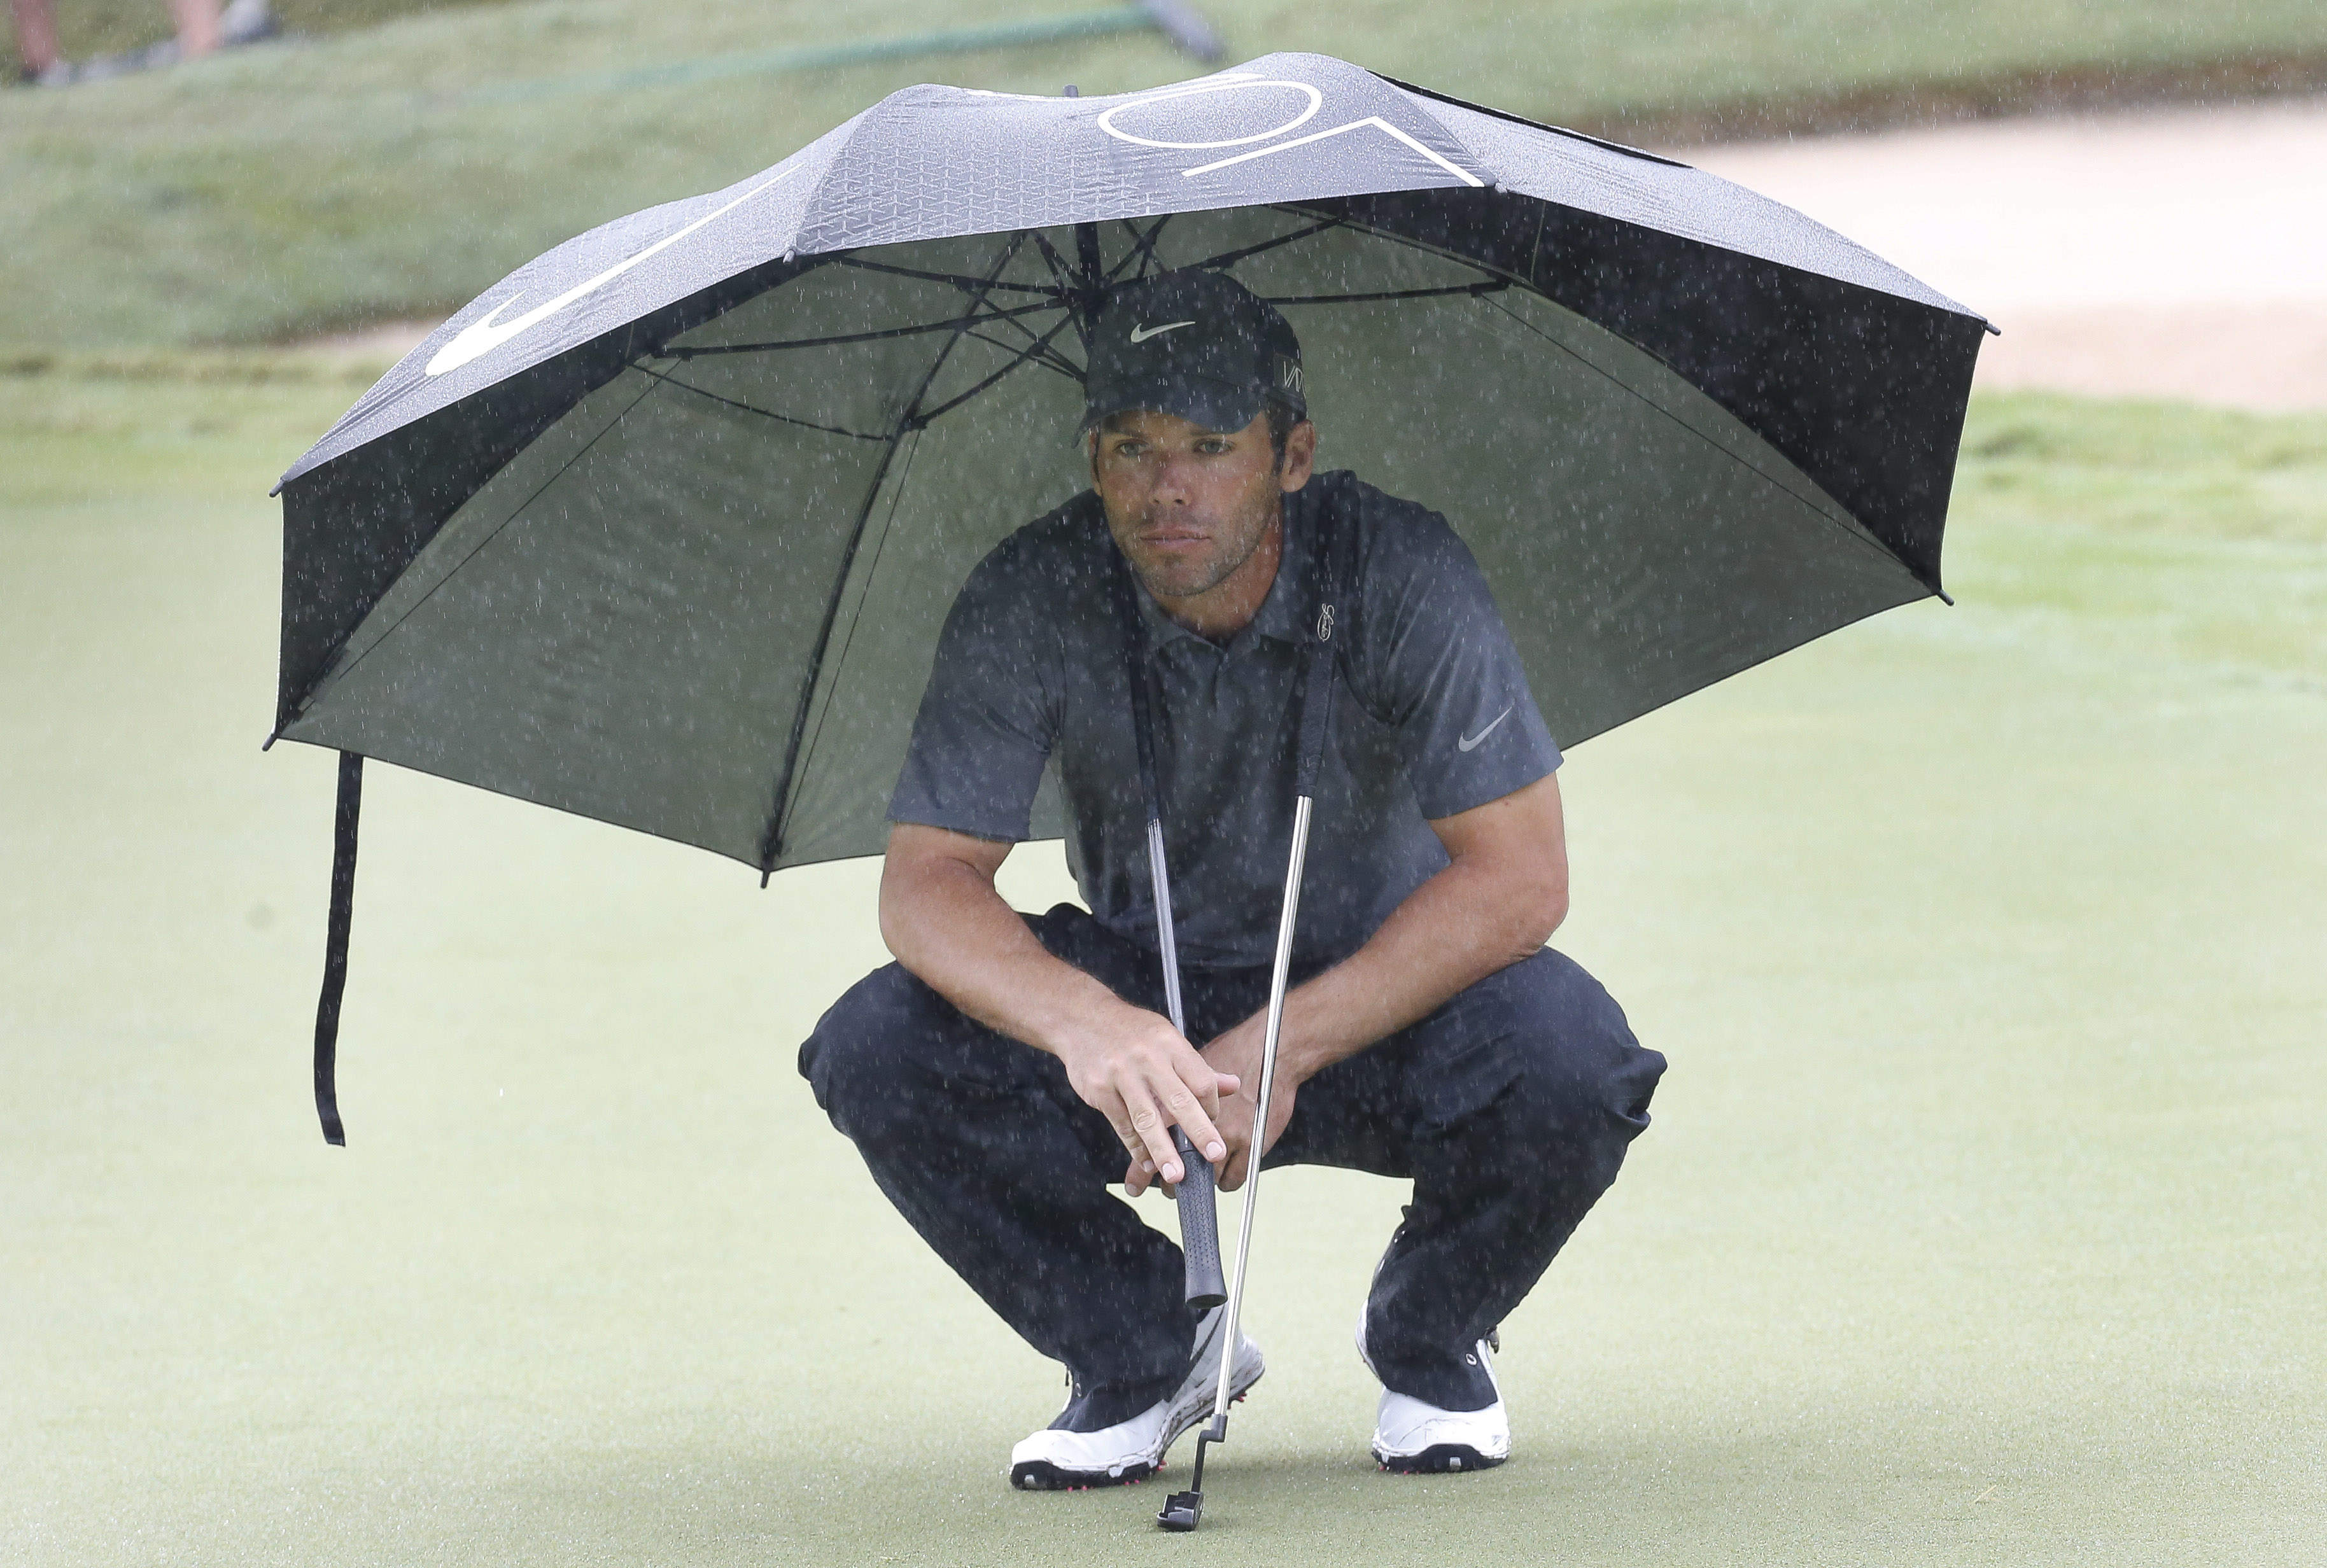 Paul Casey takes cover under an umbrella as he waits to putt on the third hole during the second round of the Tour Championship golf tournament at East Lake Club Friday, Sept. 25, 2015, in Atlanta. (AP Photo/ John Bazemore)